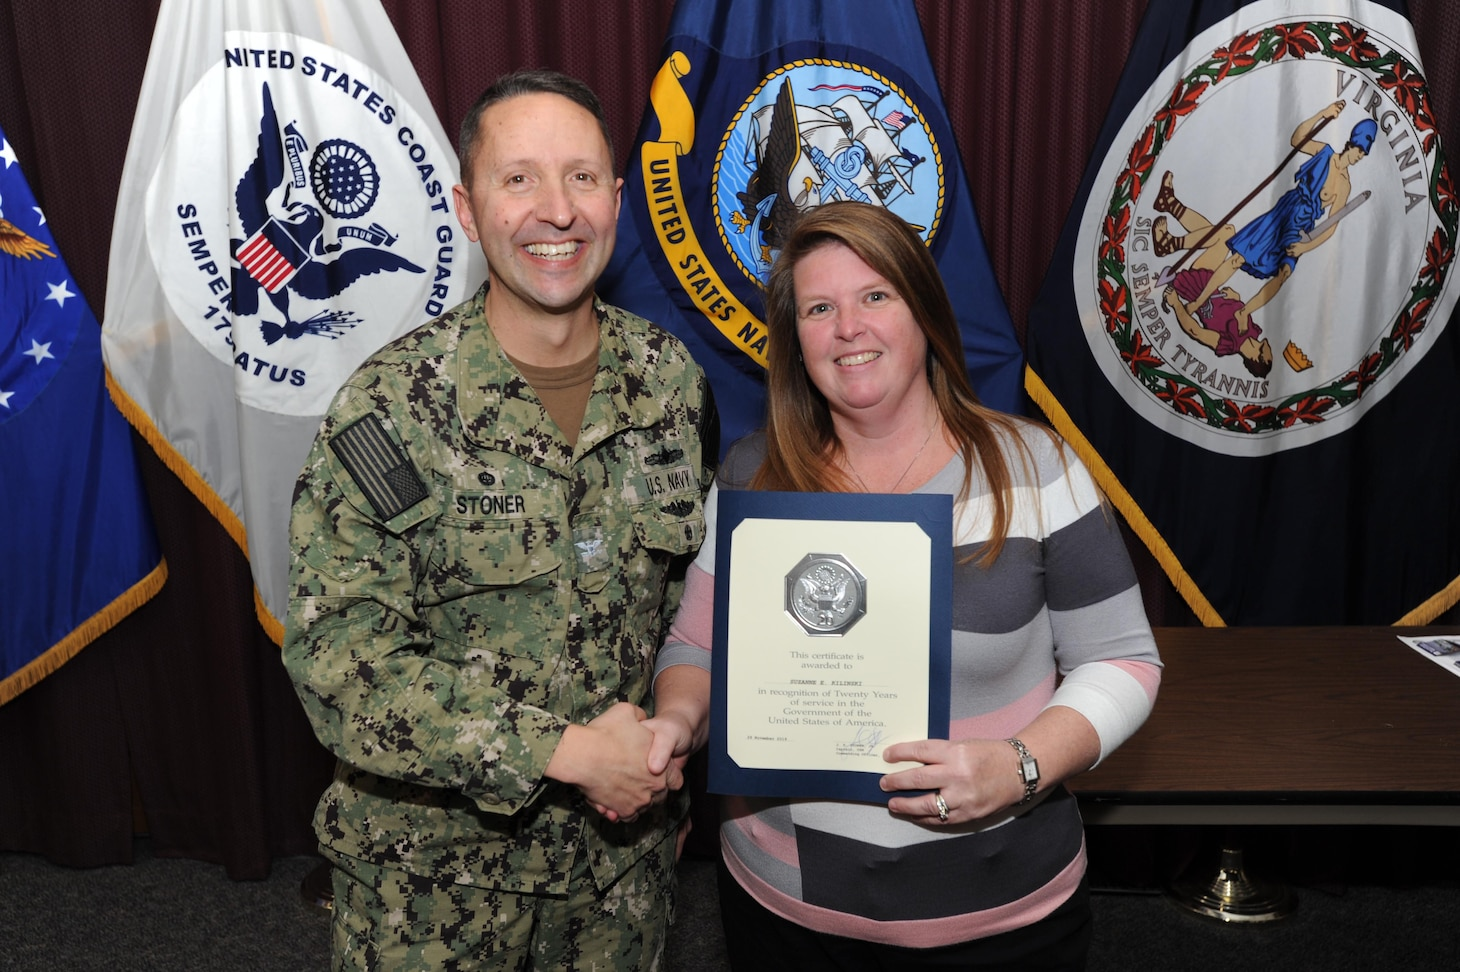 Center for Surface Combat Systems (CSCS) Commanding Officer, Capt. Dave Stoner, recognizes CSCS Financial Management Analyst Mrs. Suzie Kilinski for her 20 years of civilian service at an awards ceremony January 9, 2020.